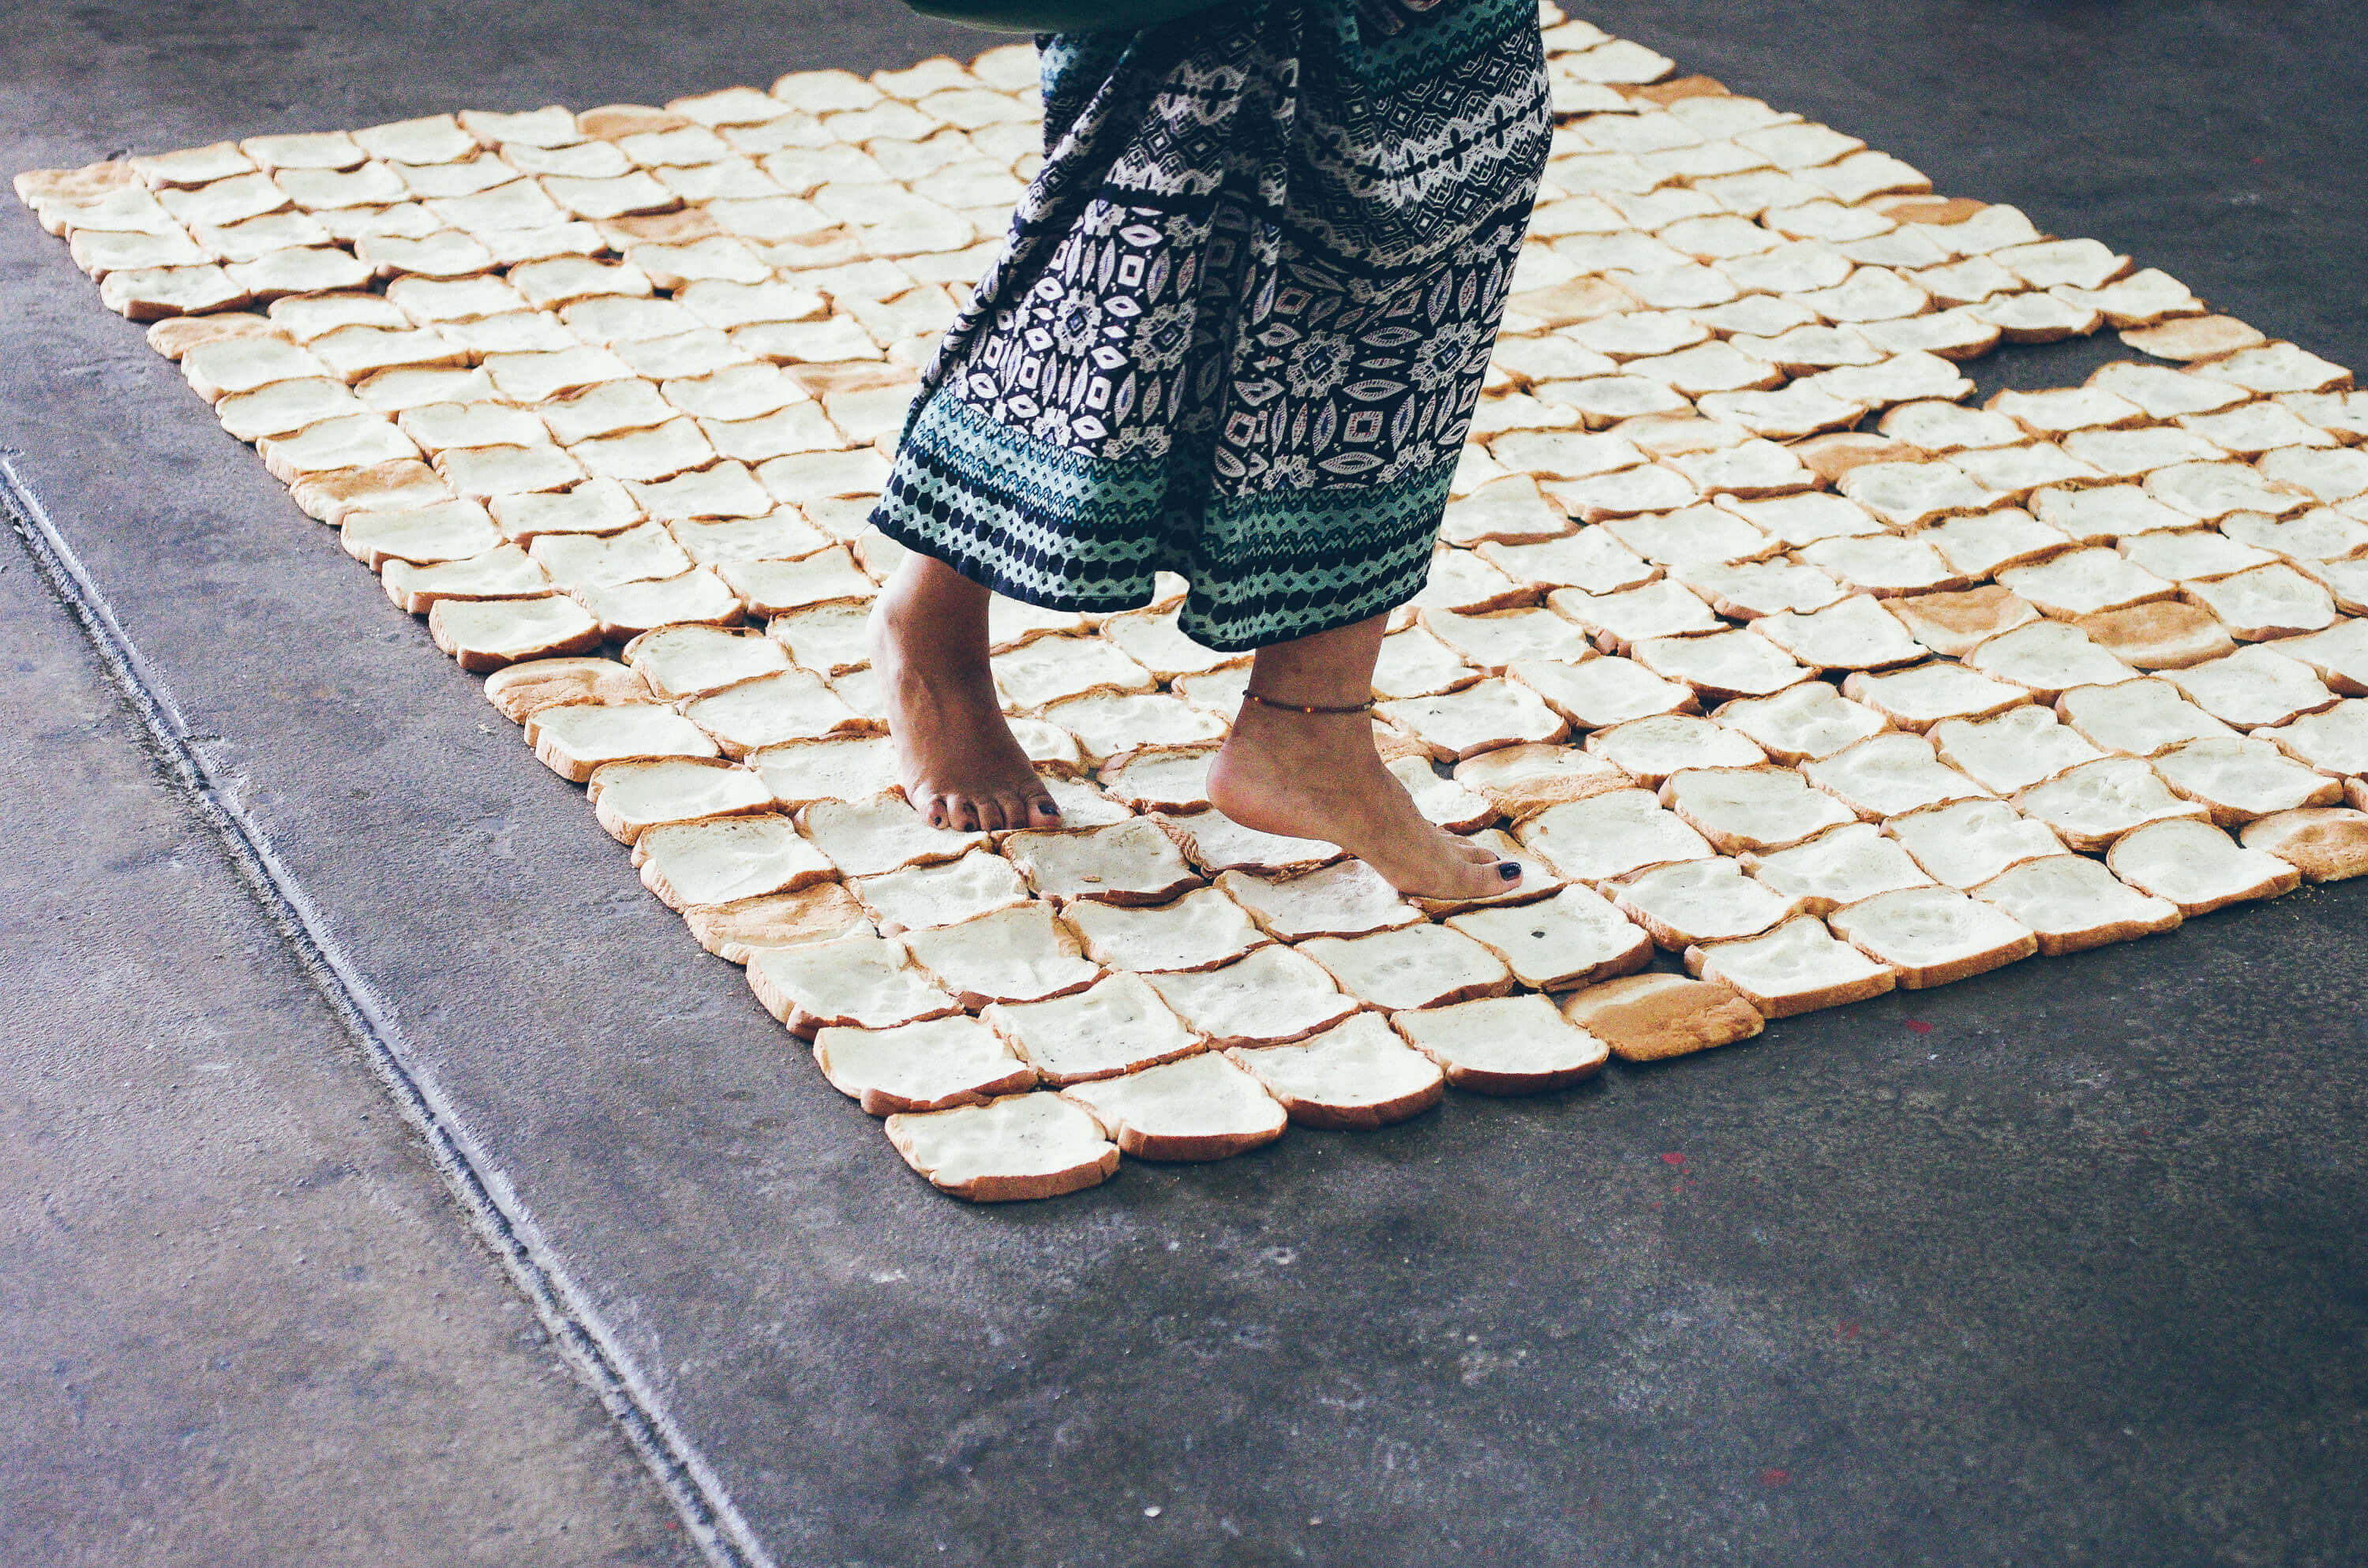 Walking on Toast Performance during the Bushwick Collective Block Party 2016